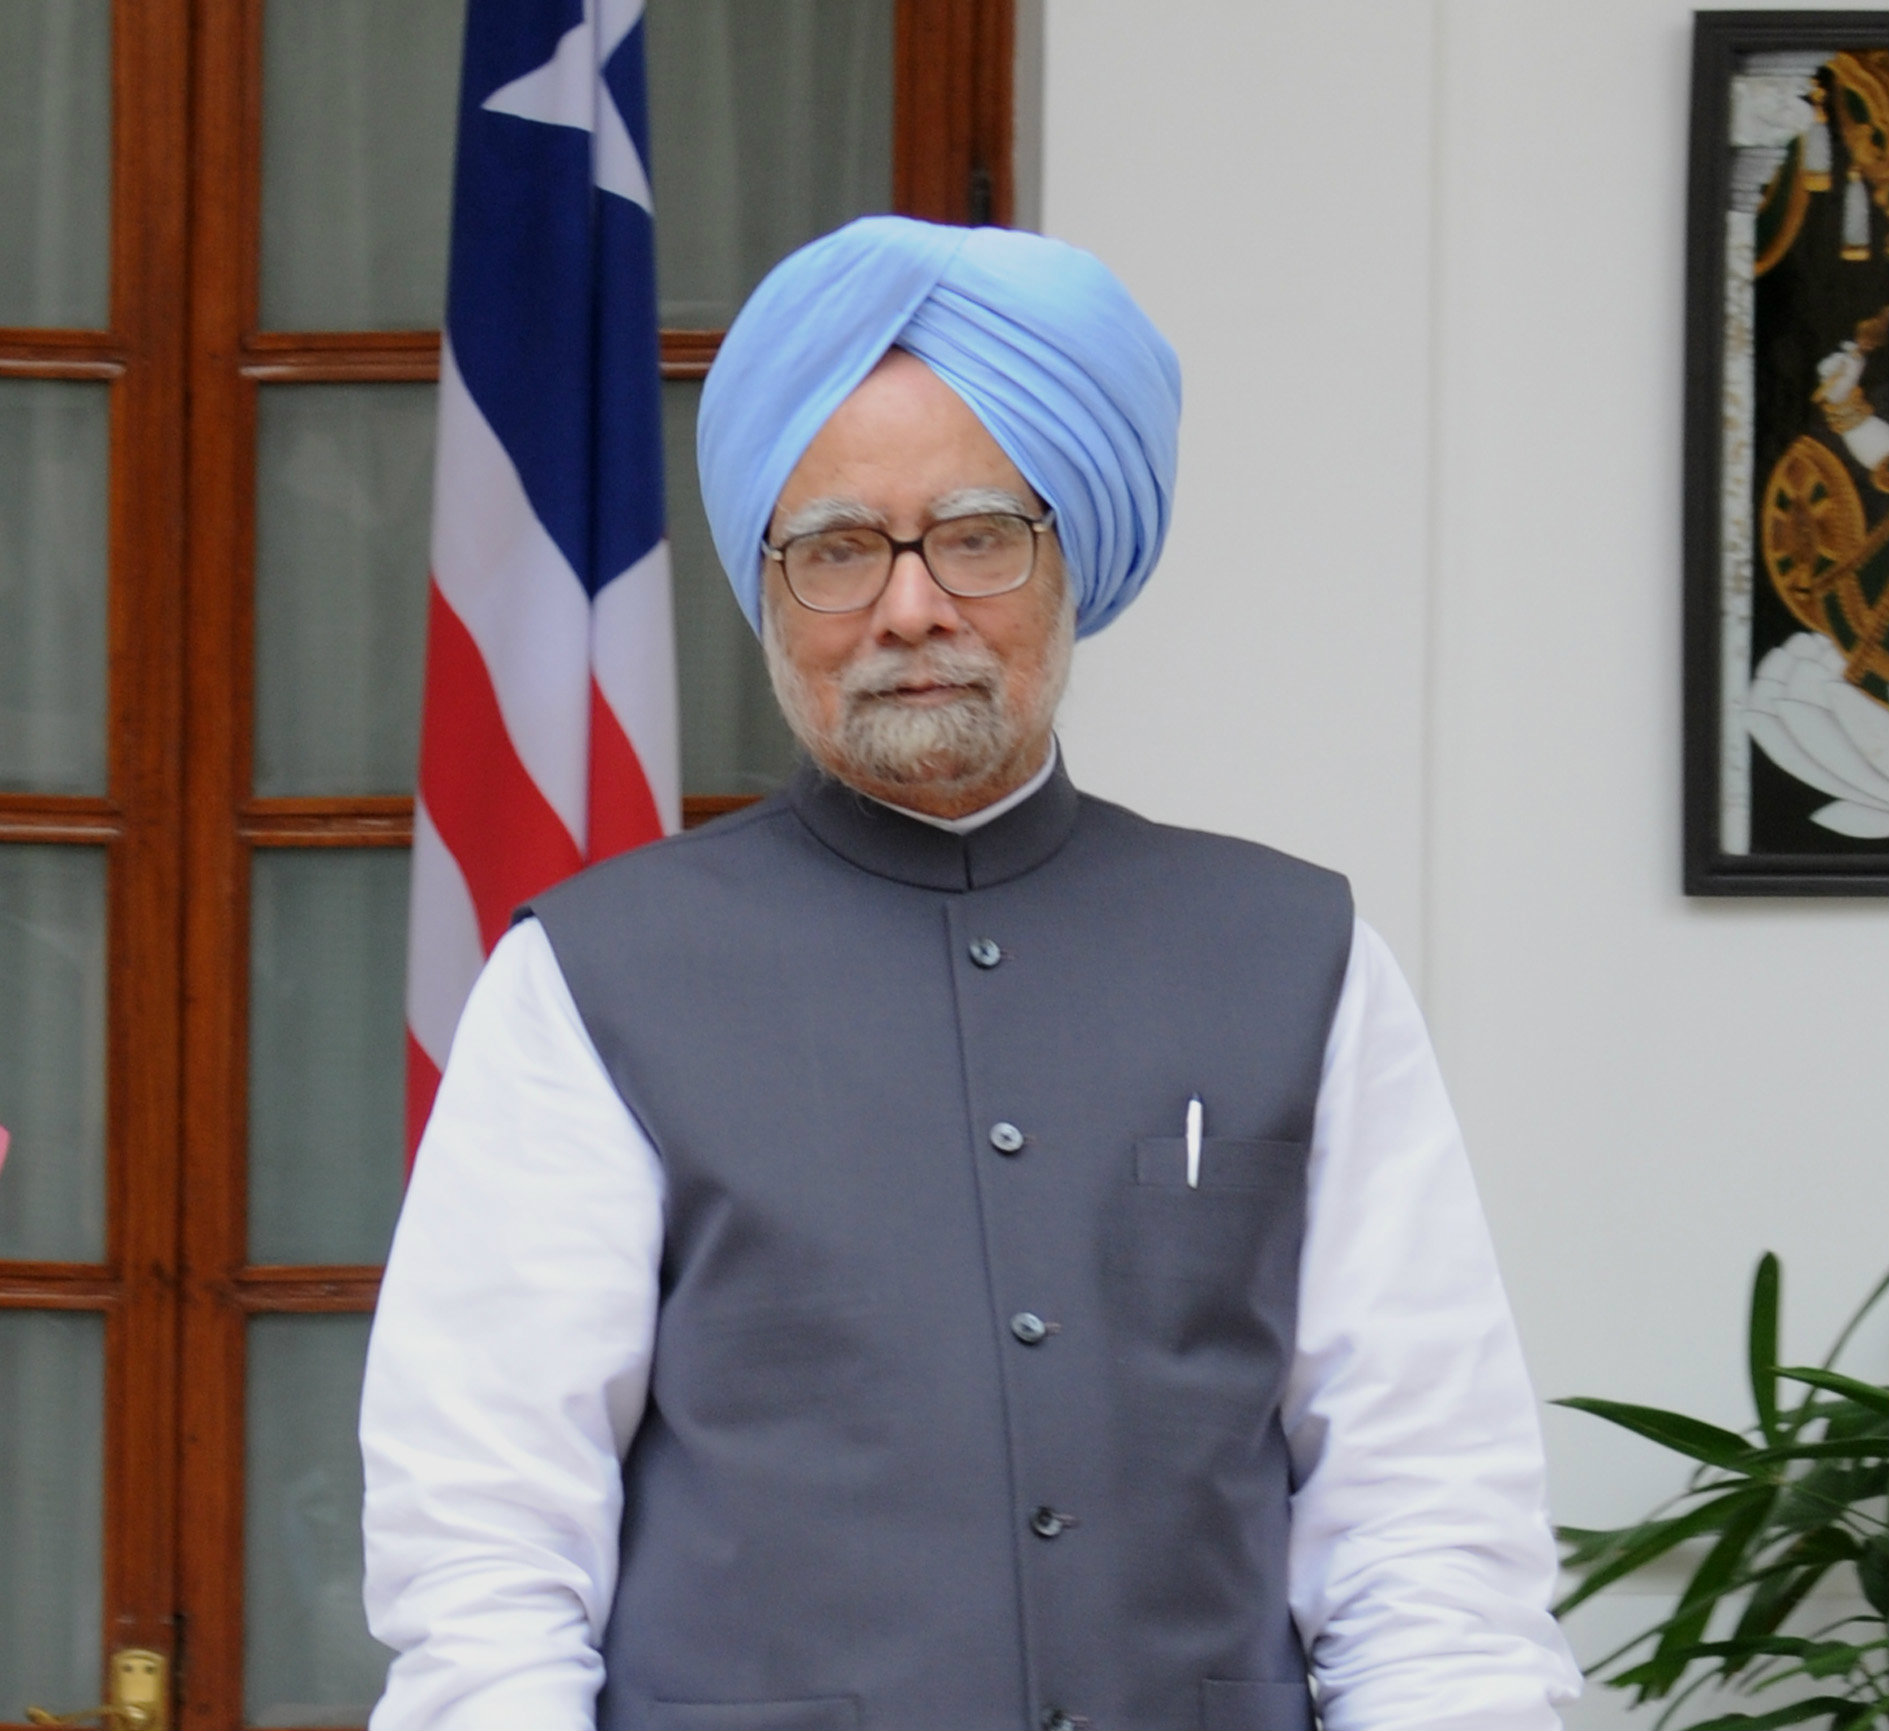 The Accidental Prime Minister is BJP's propaganda against our party: Congress